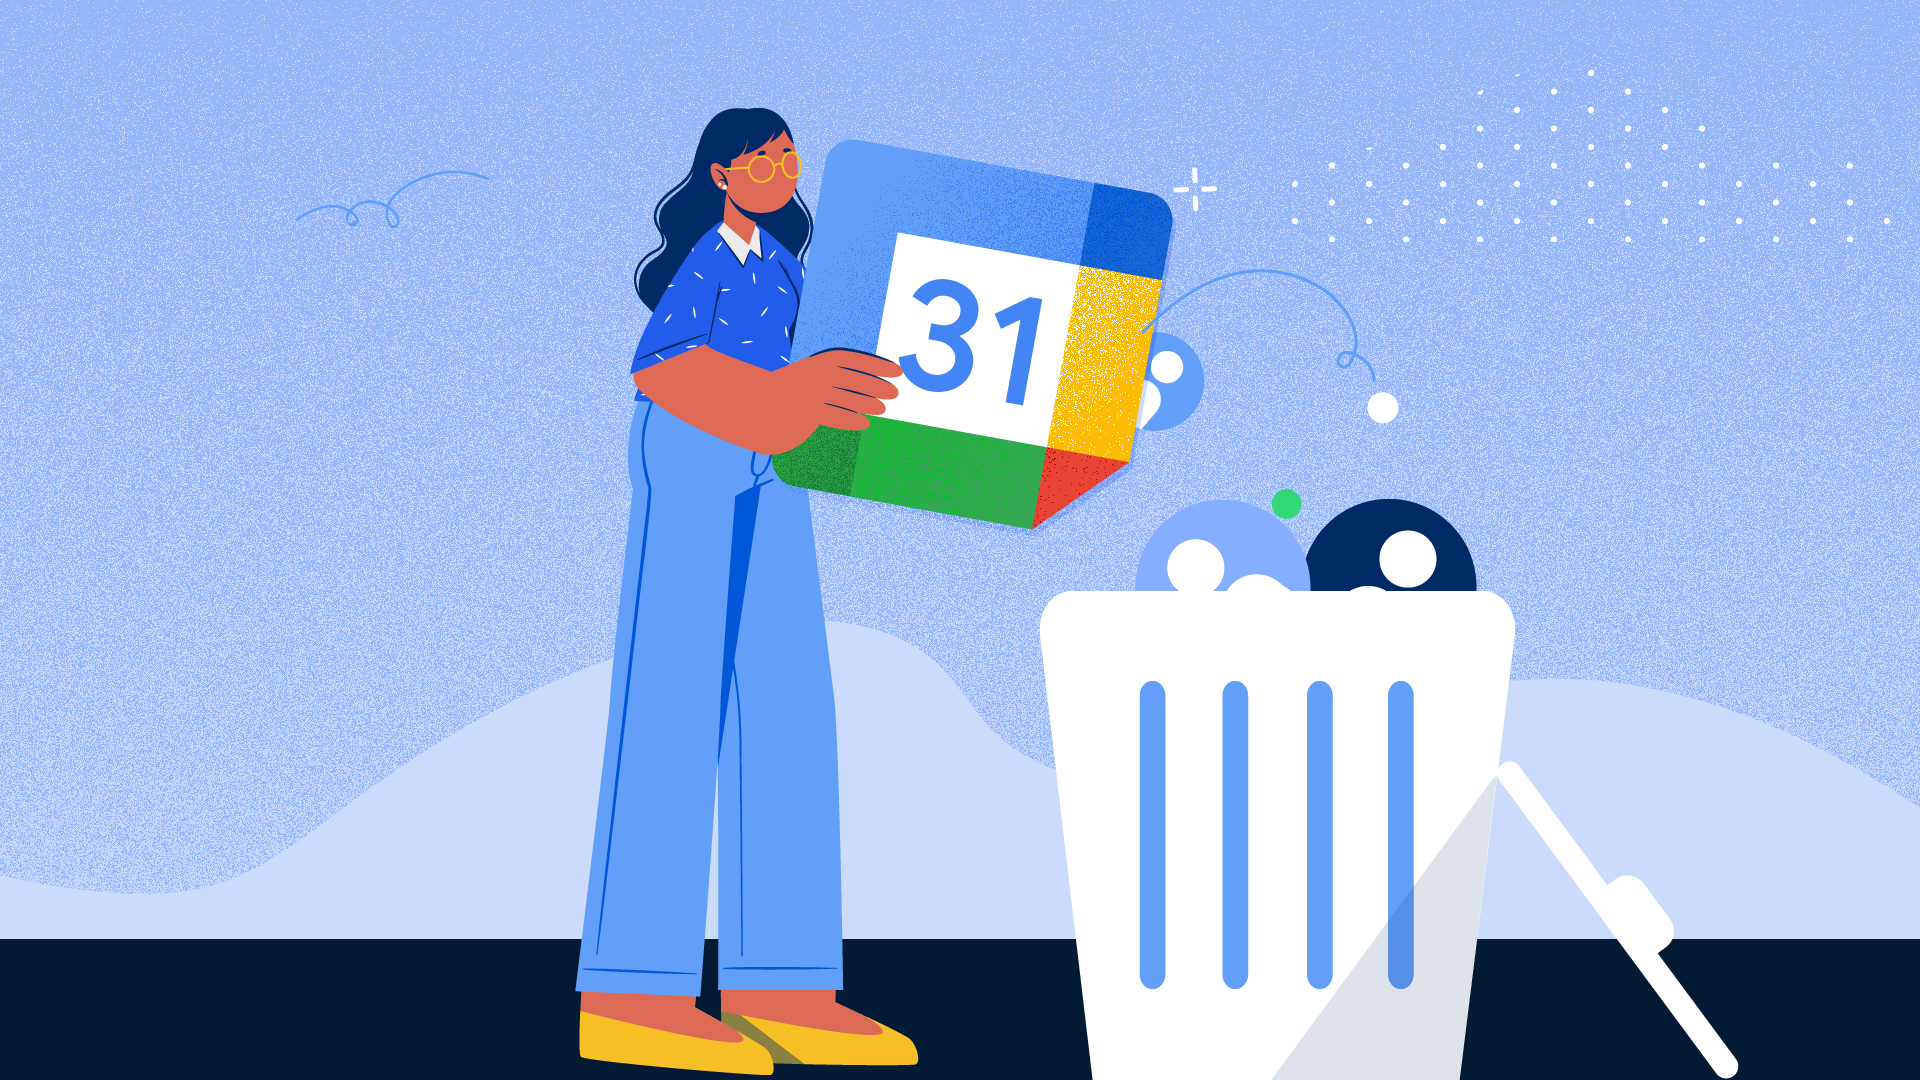 How To Delete Google Calendar To Declutter And Be More Organized